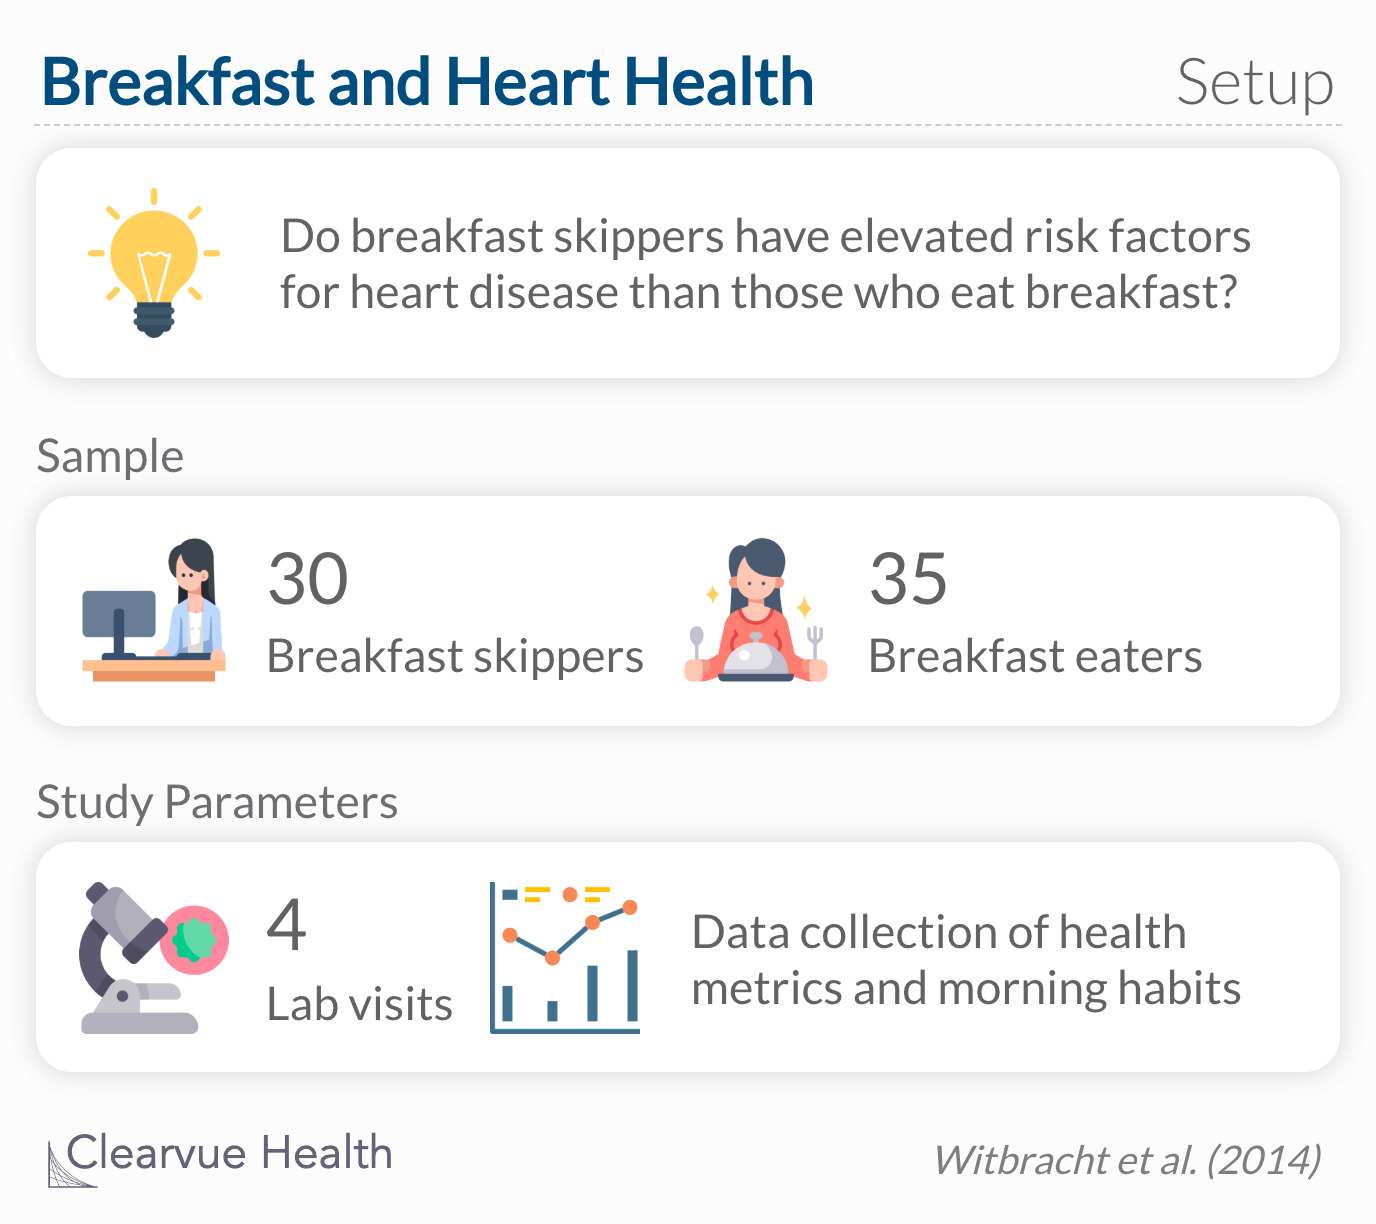 Do breakfast skippers have elevated risk factors for heart disease than those who eat breakfast?